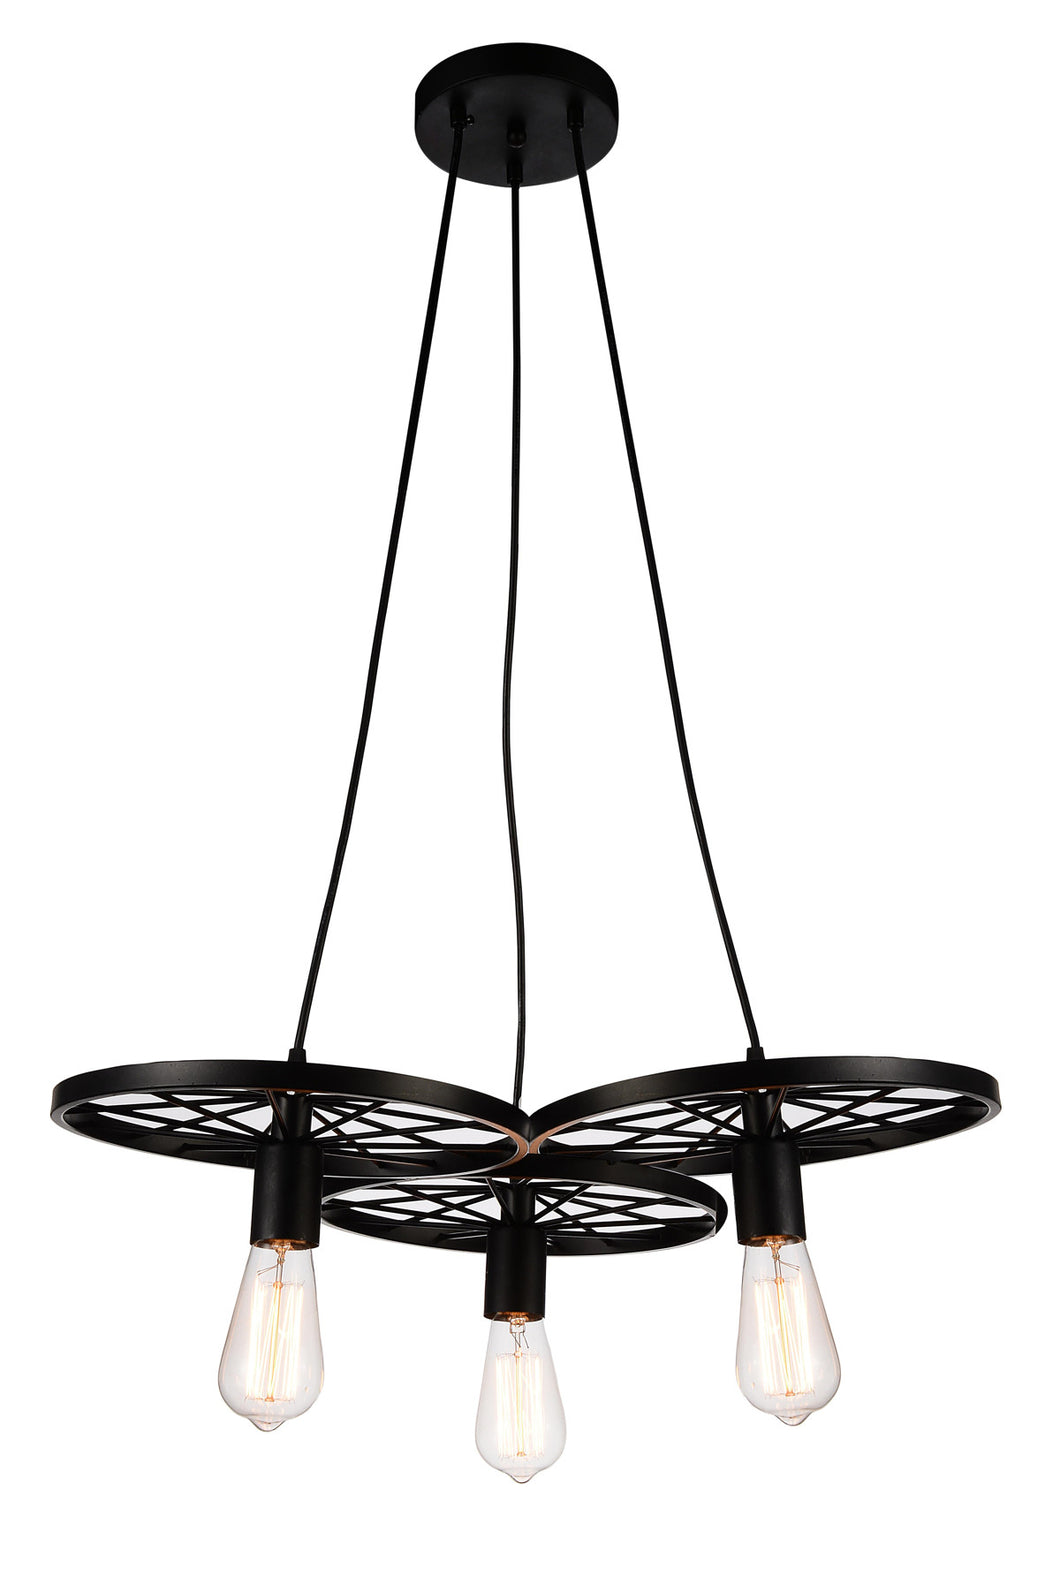 3 Light Down Chandelier with Black finish